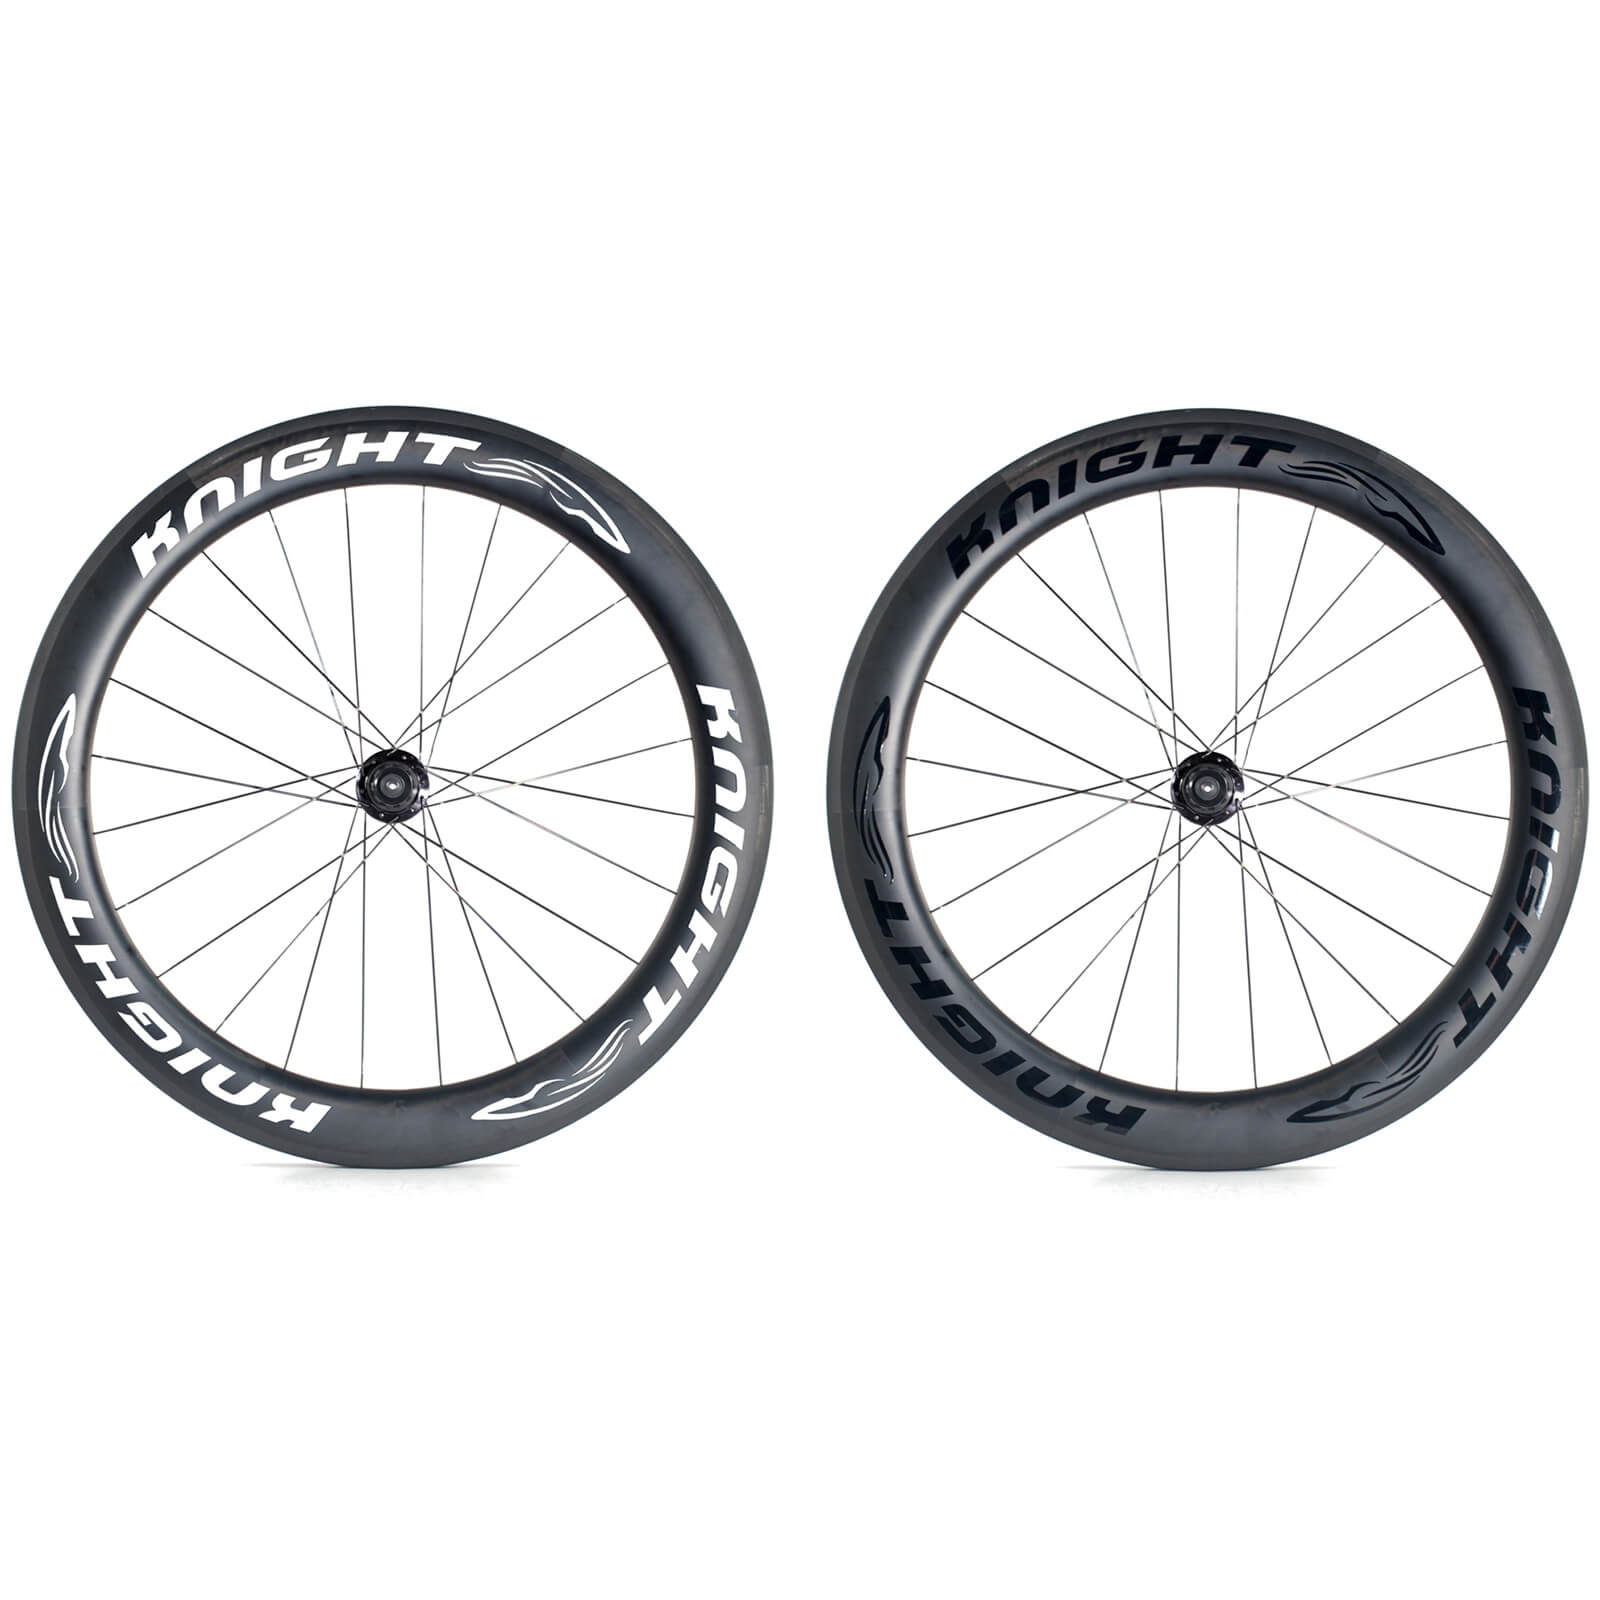 Knight Composites 65 Clincher Rear Wheel